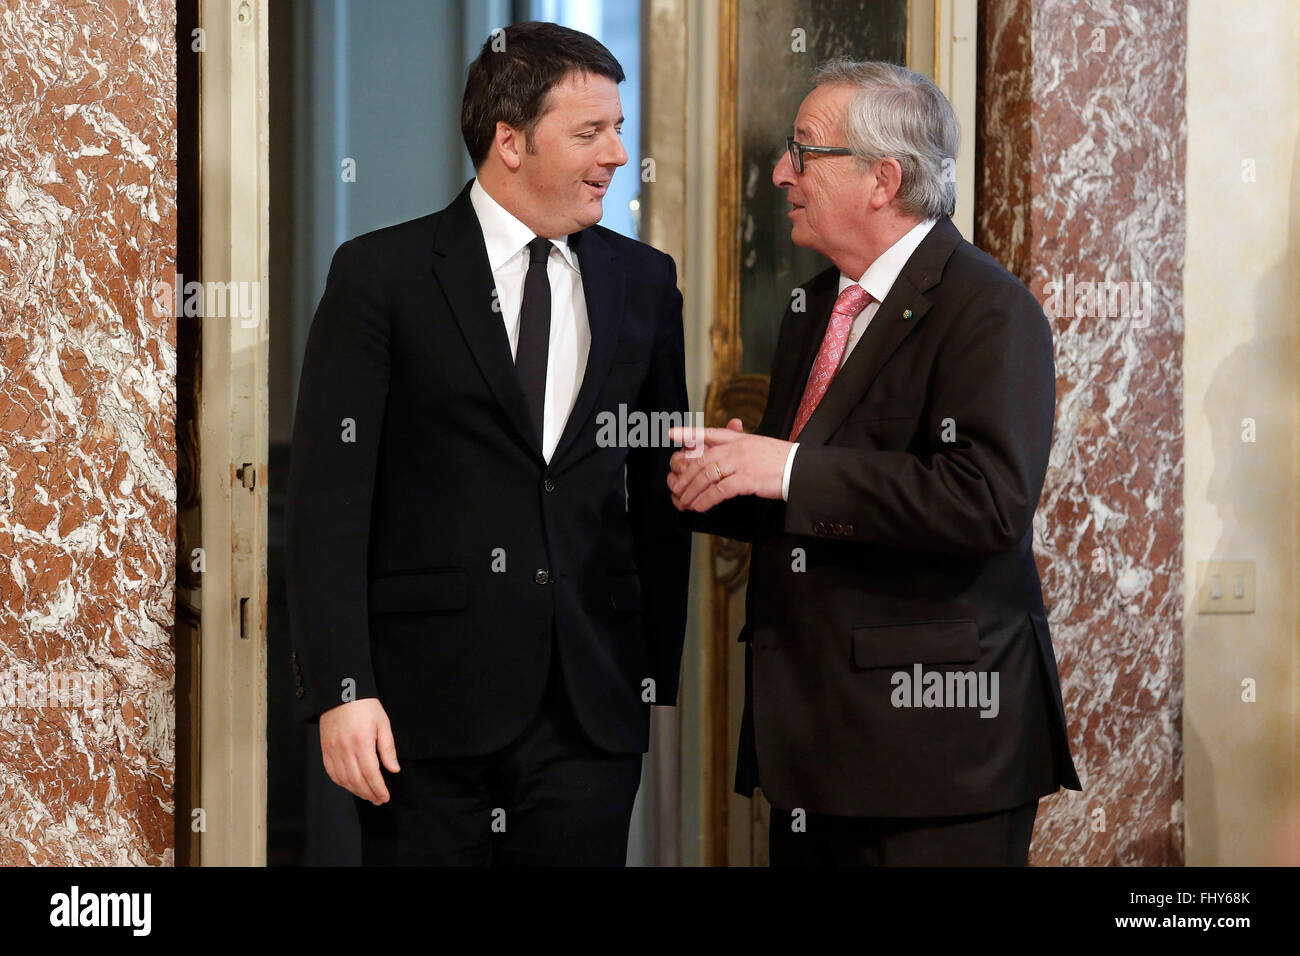 Matteo Renzi and Jean-Claude Junker Rome 26th February 2016. Italian Premier meets the President of the EU Commission. - Stock Image